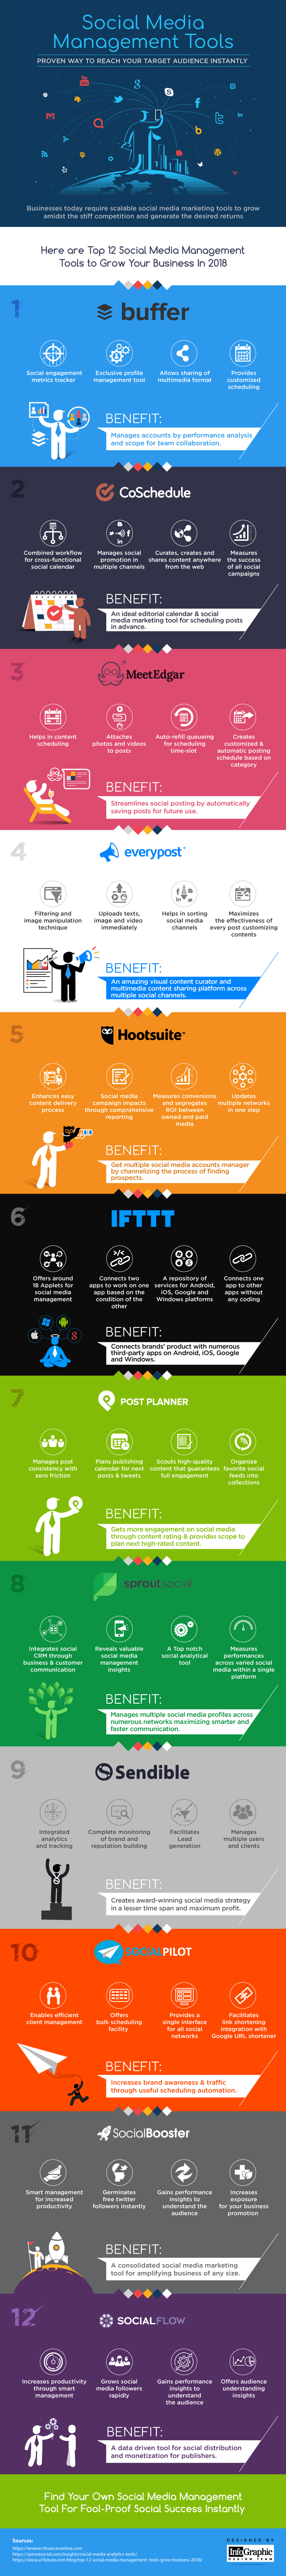 Social Media Management Tools Infographic